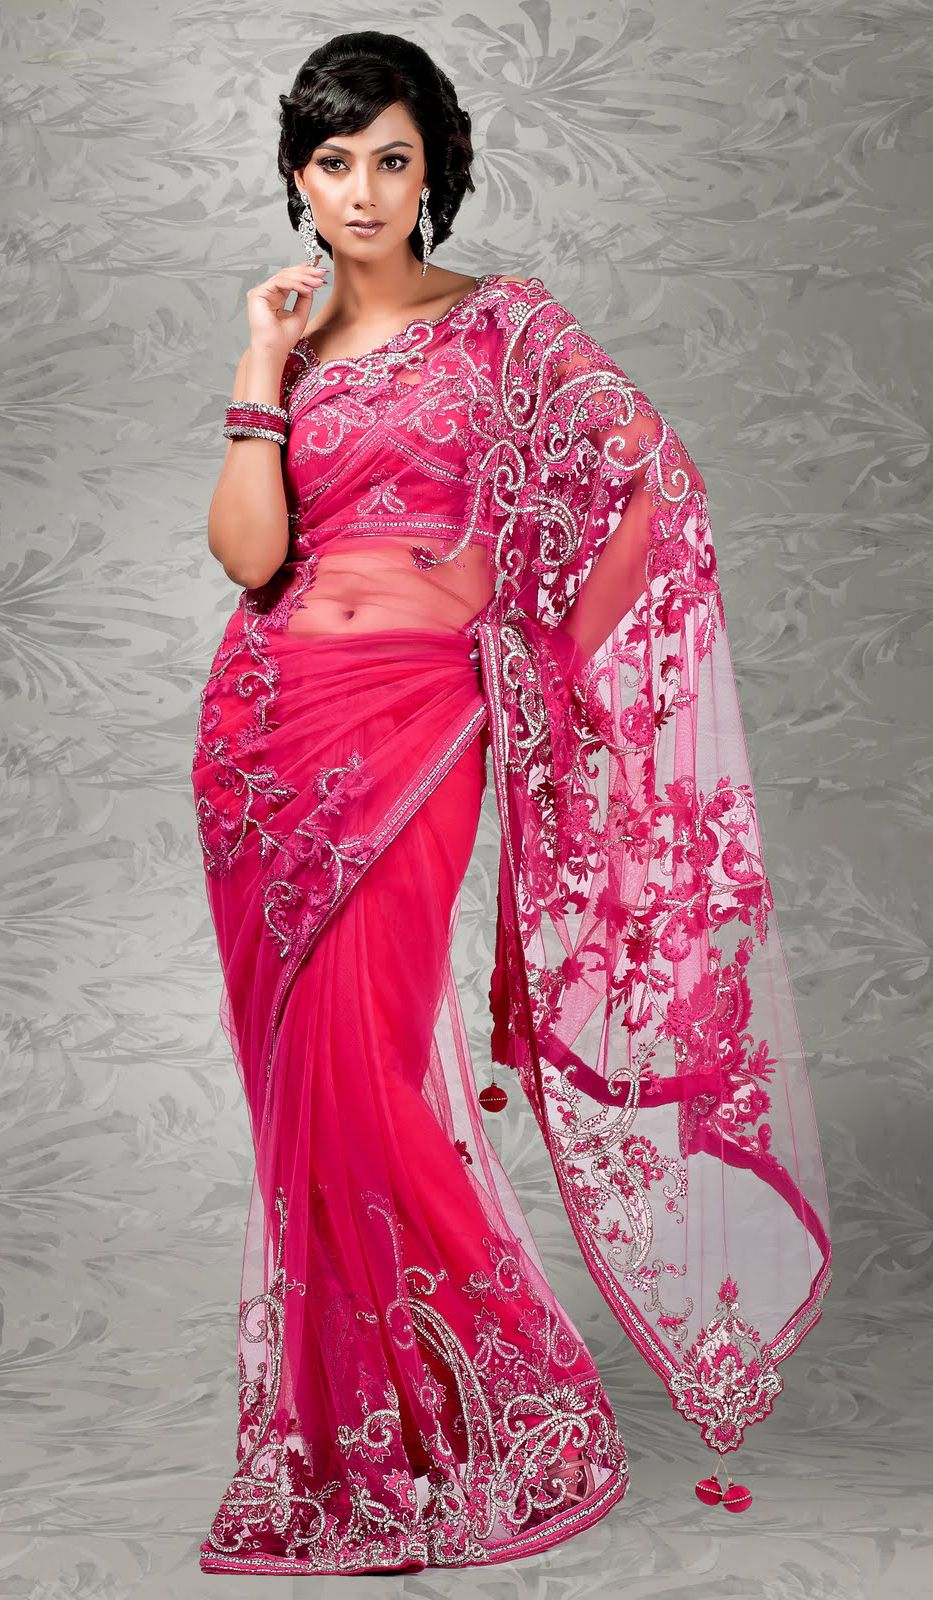 Deep Pink Net Indian Fashion Saree Cote Mode Pinterest Indian Fashion Saree And Saris